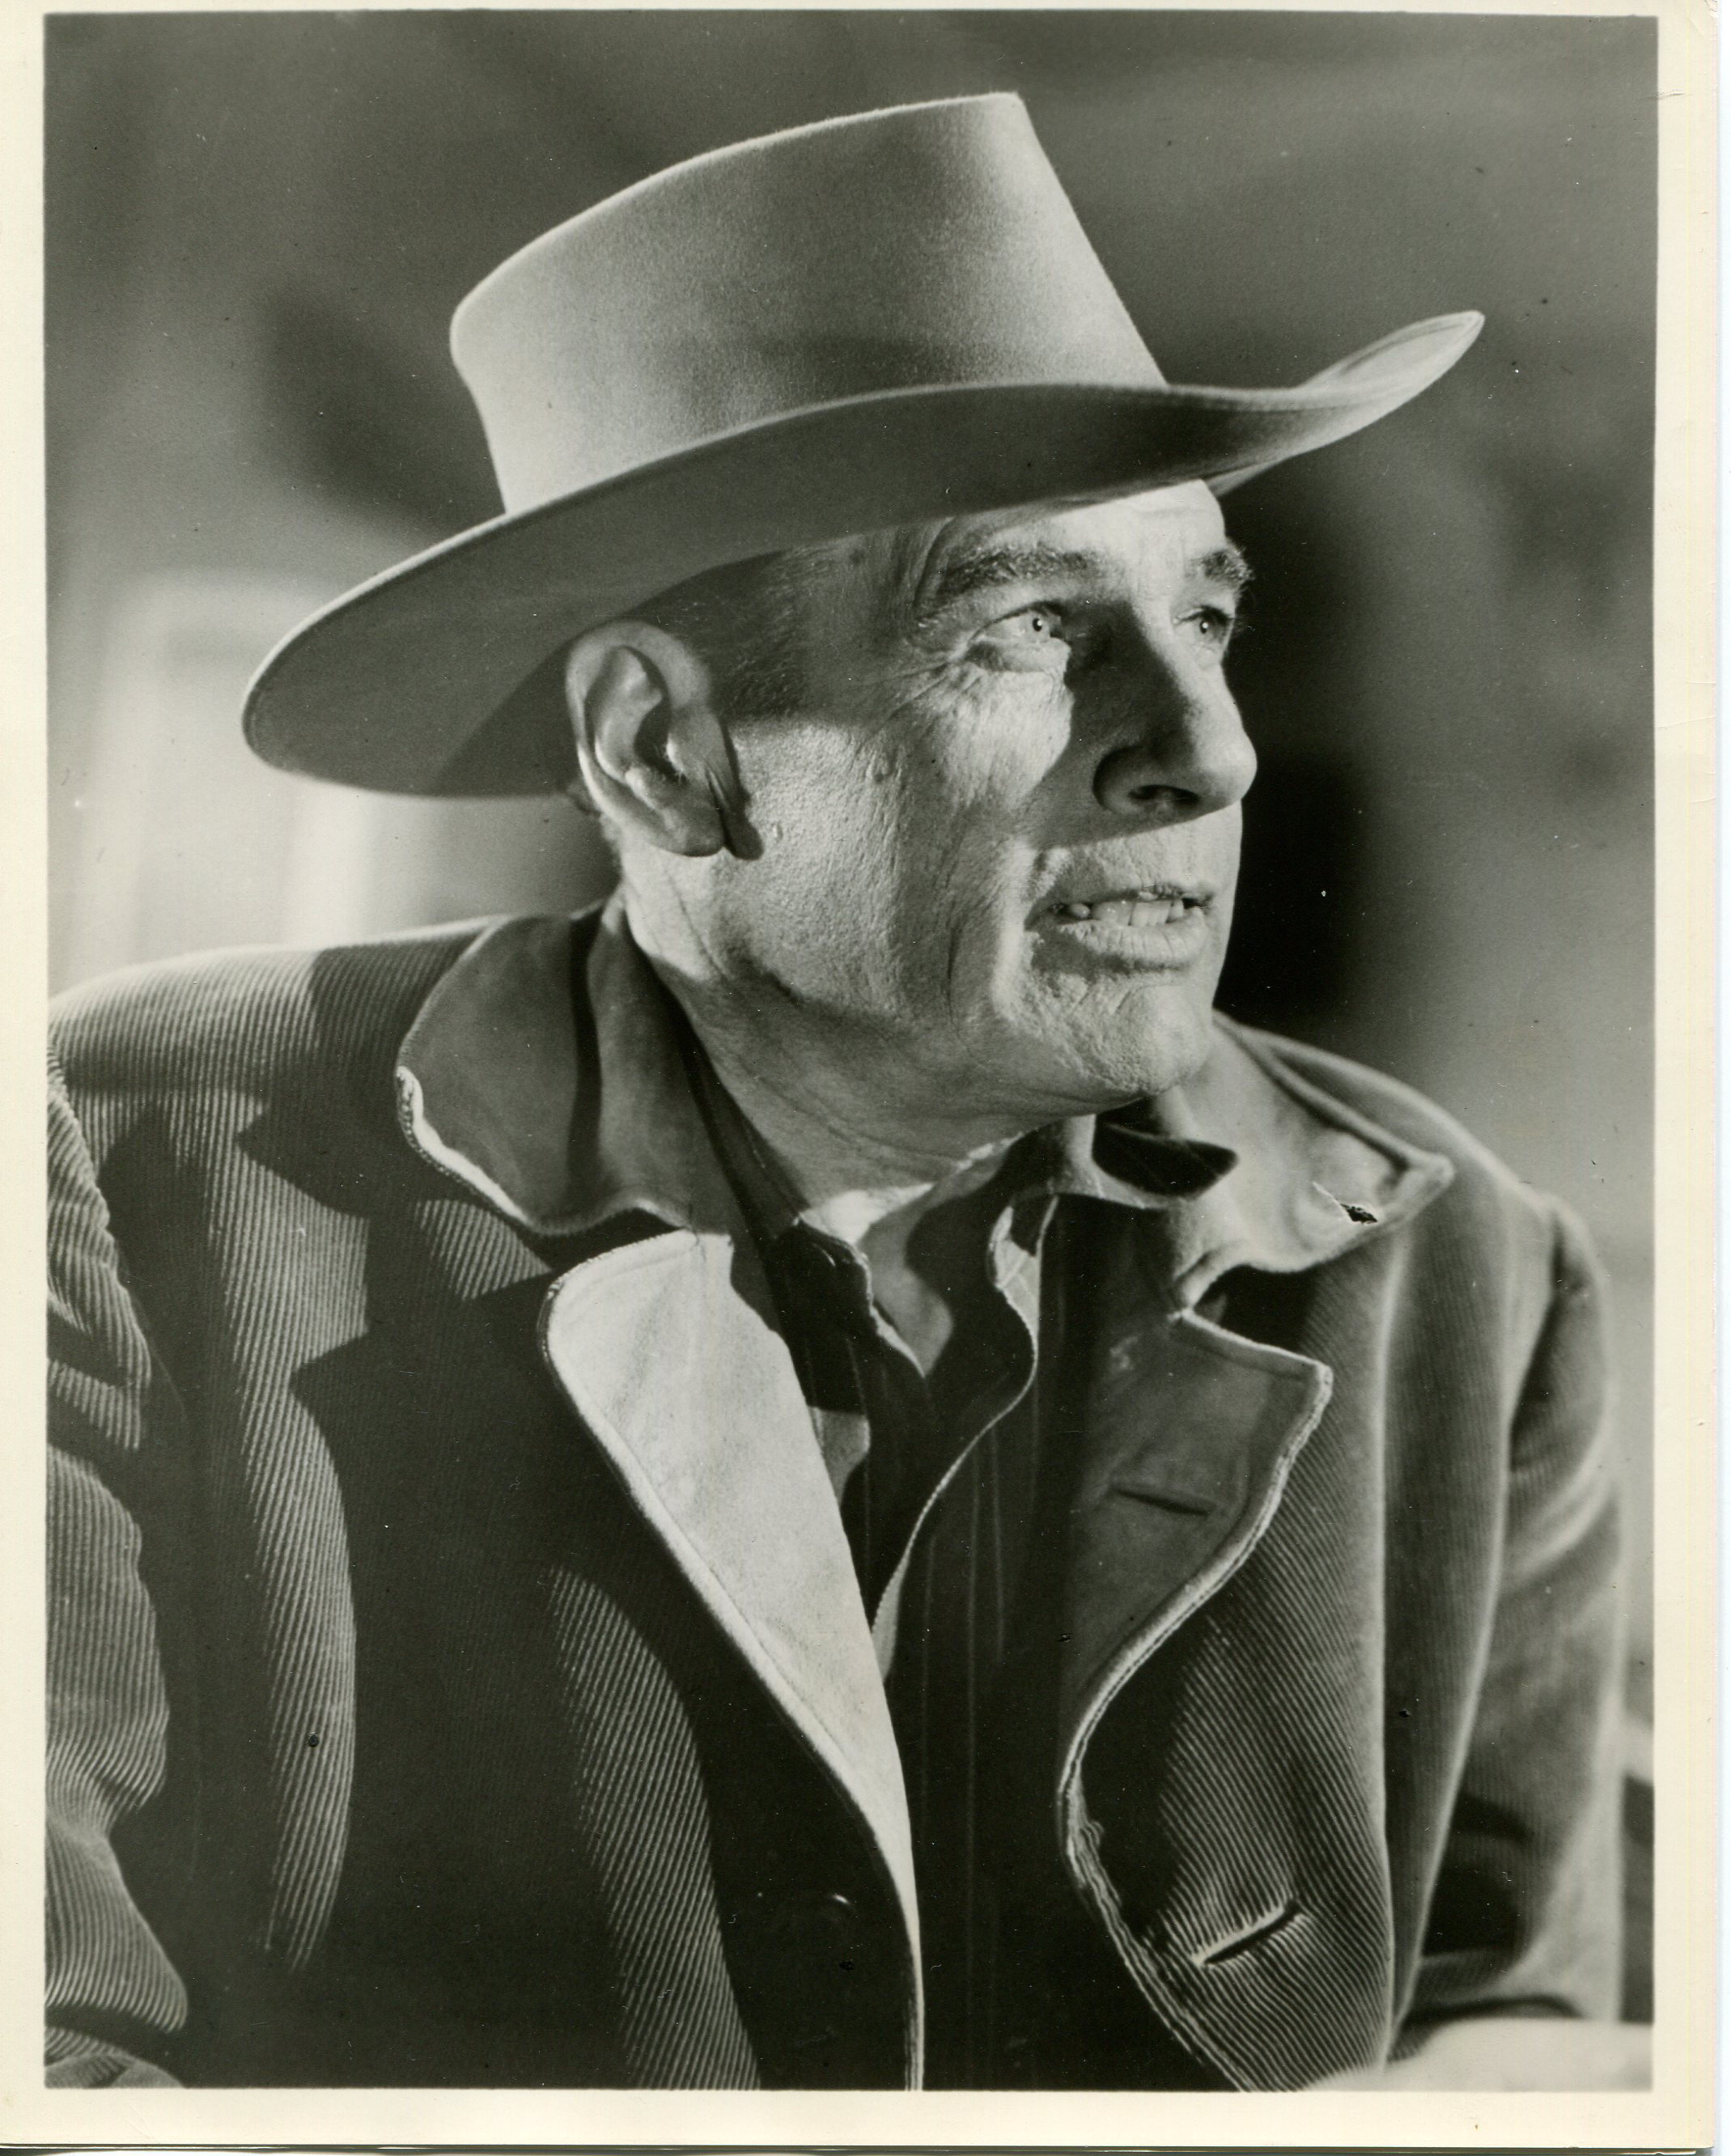 Richard Arlen in Lawman (1958)